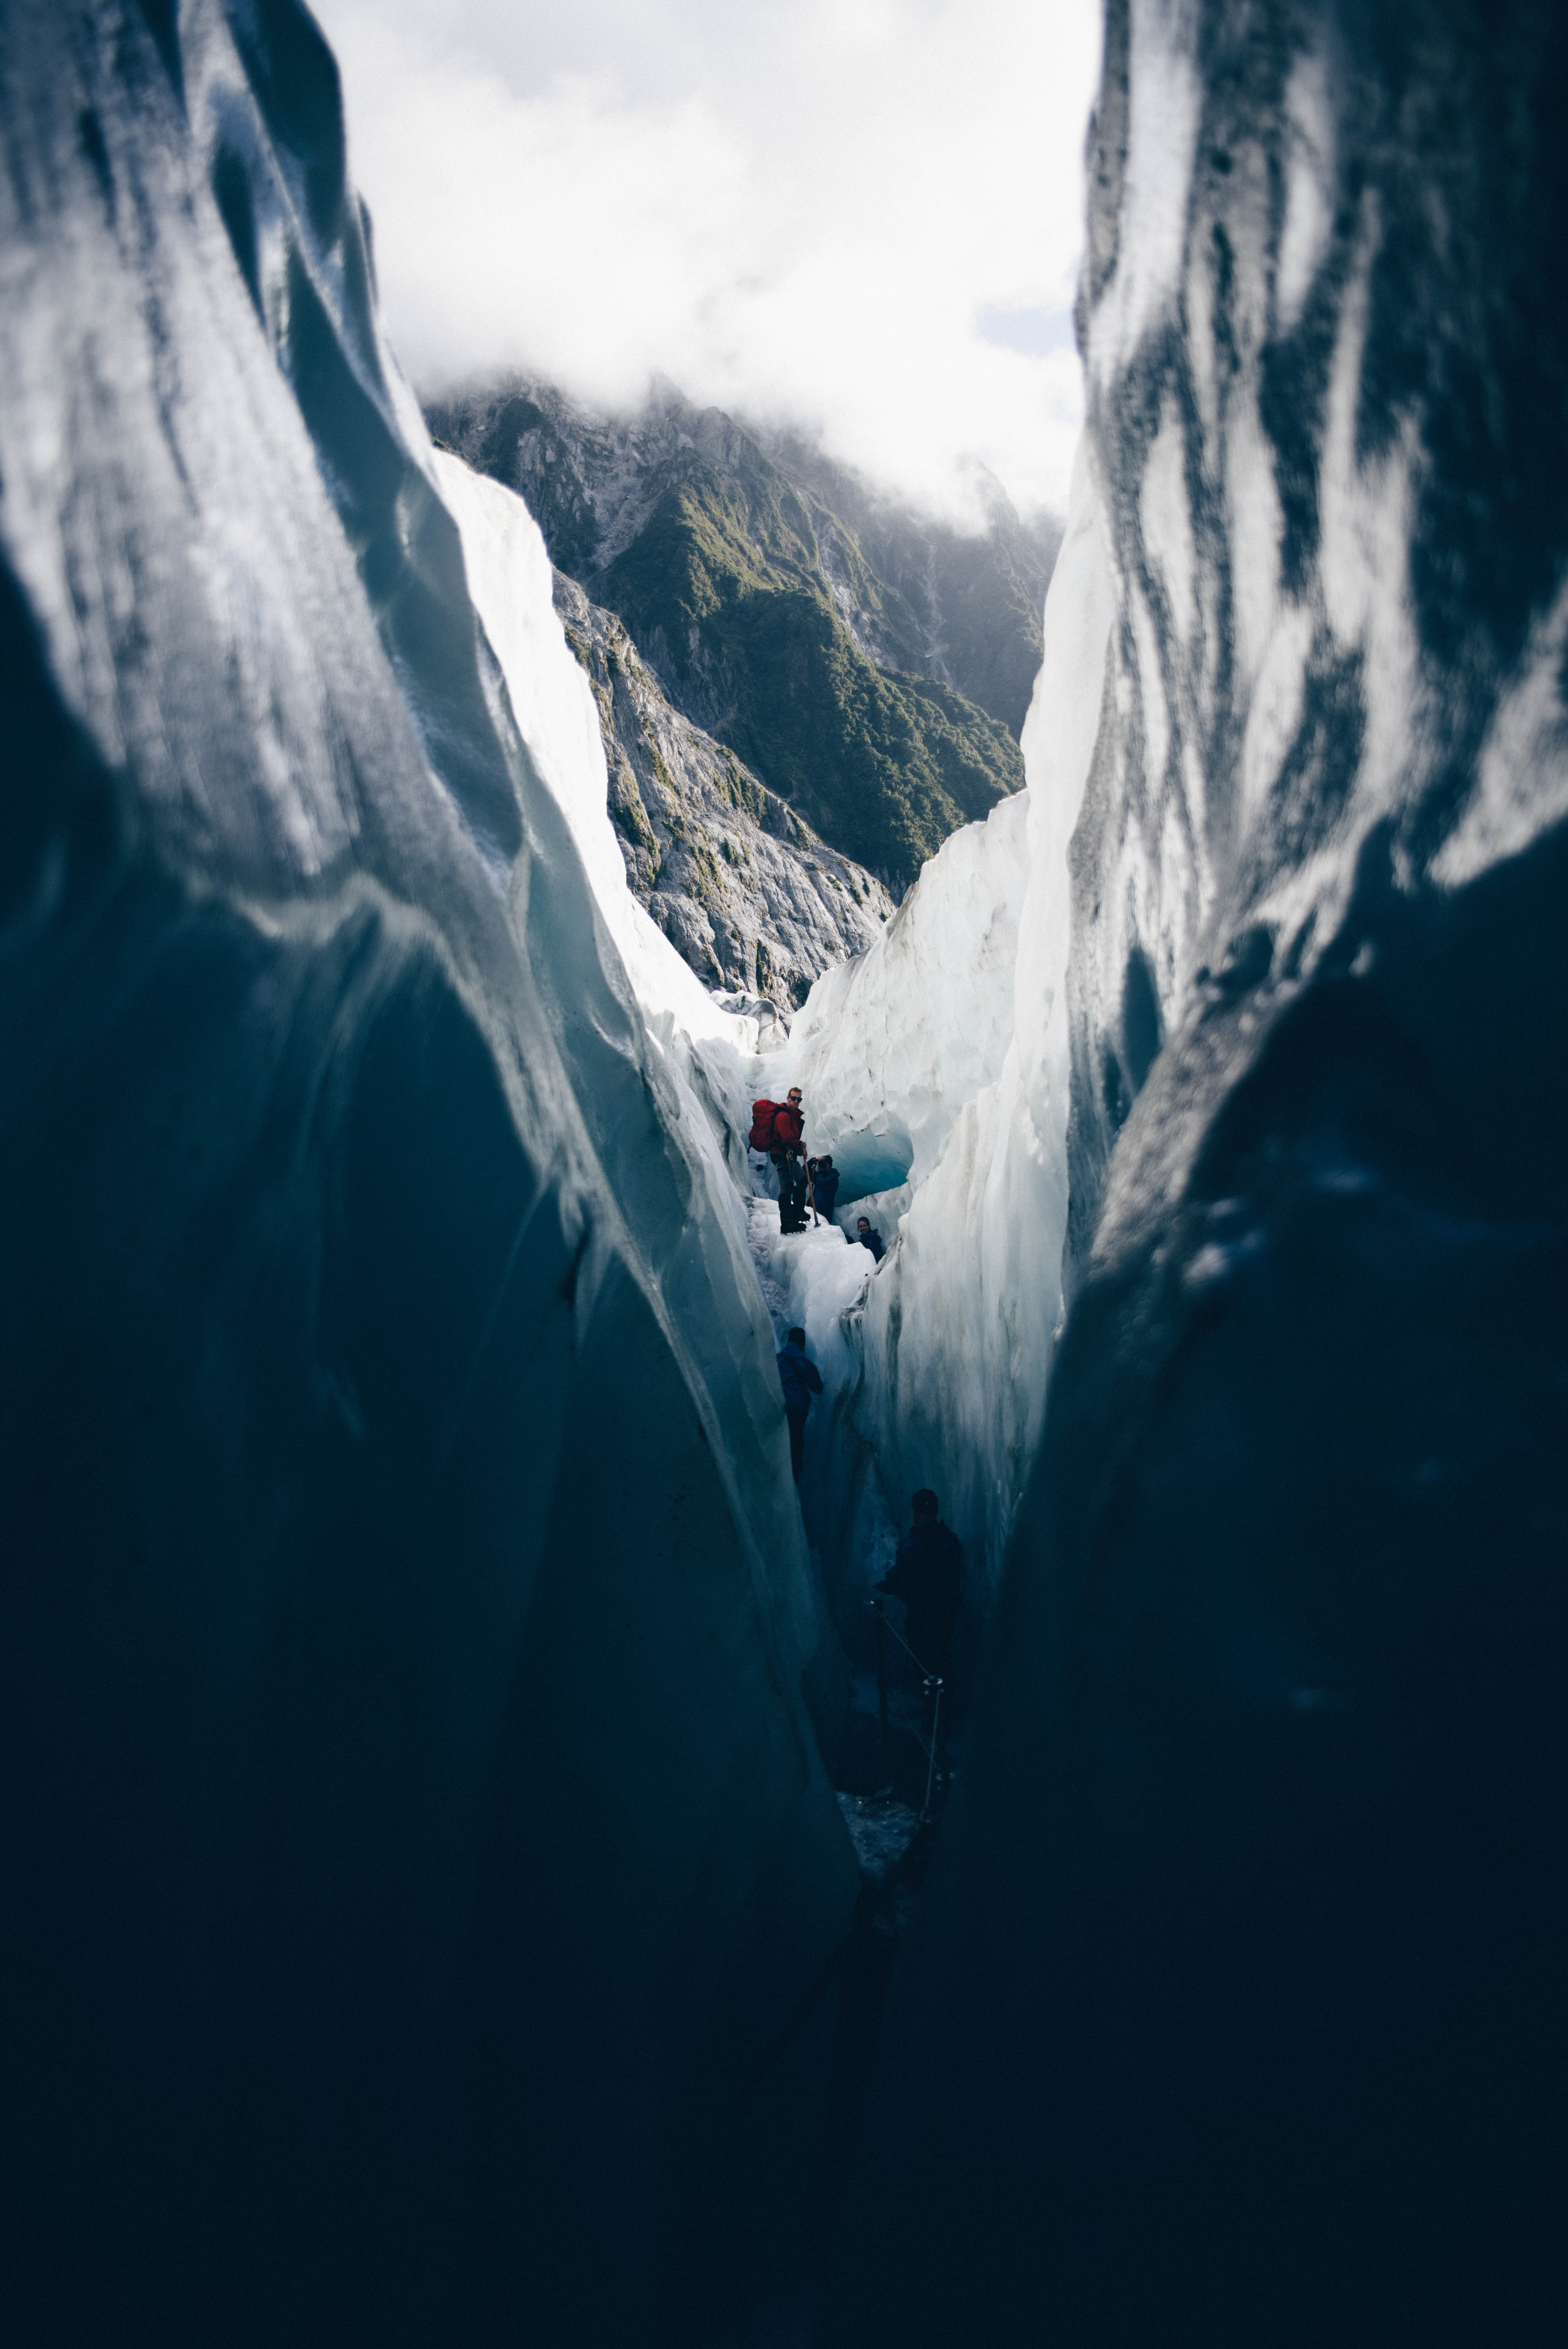 Several hikers exploring a glacial crevasse in the mountains